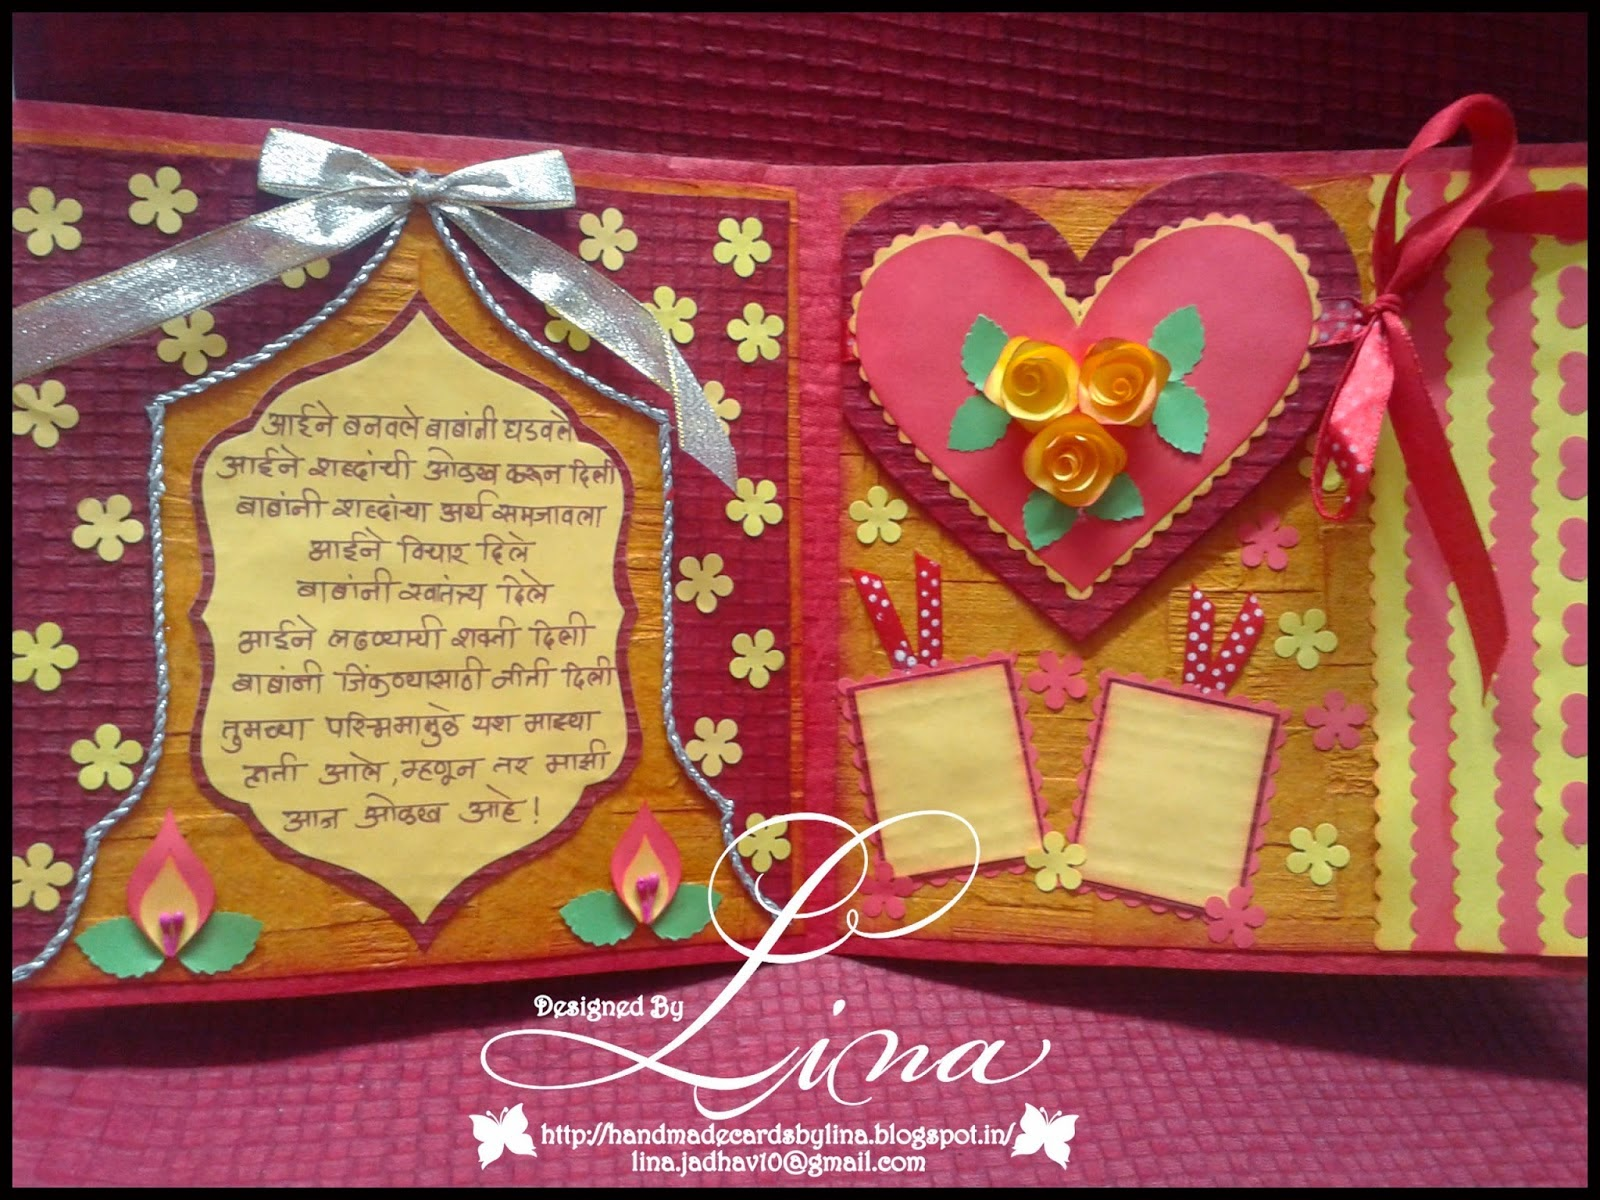 Marathi Wedding Invitation Wording Sample: Wedding And Jewellery: Marathi Lagna Patrika Wordings